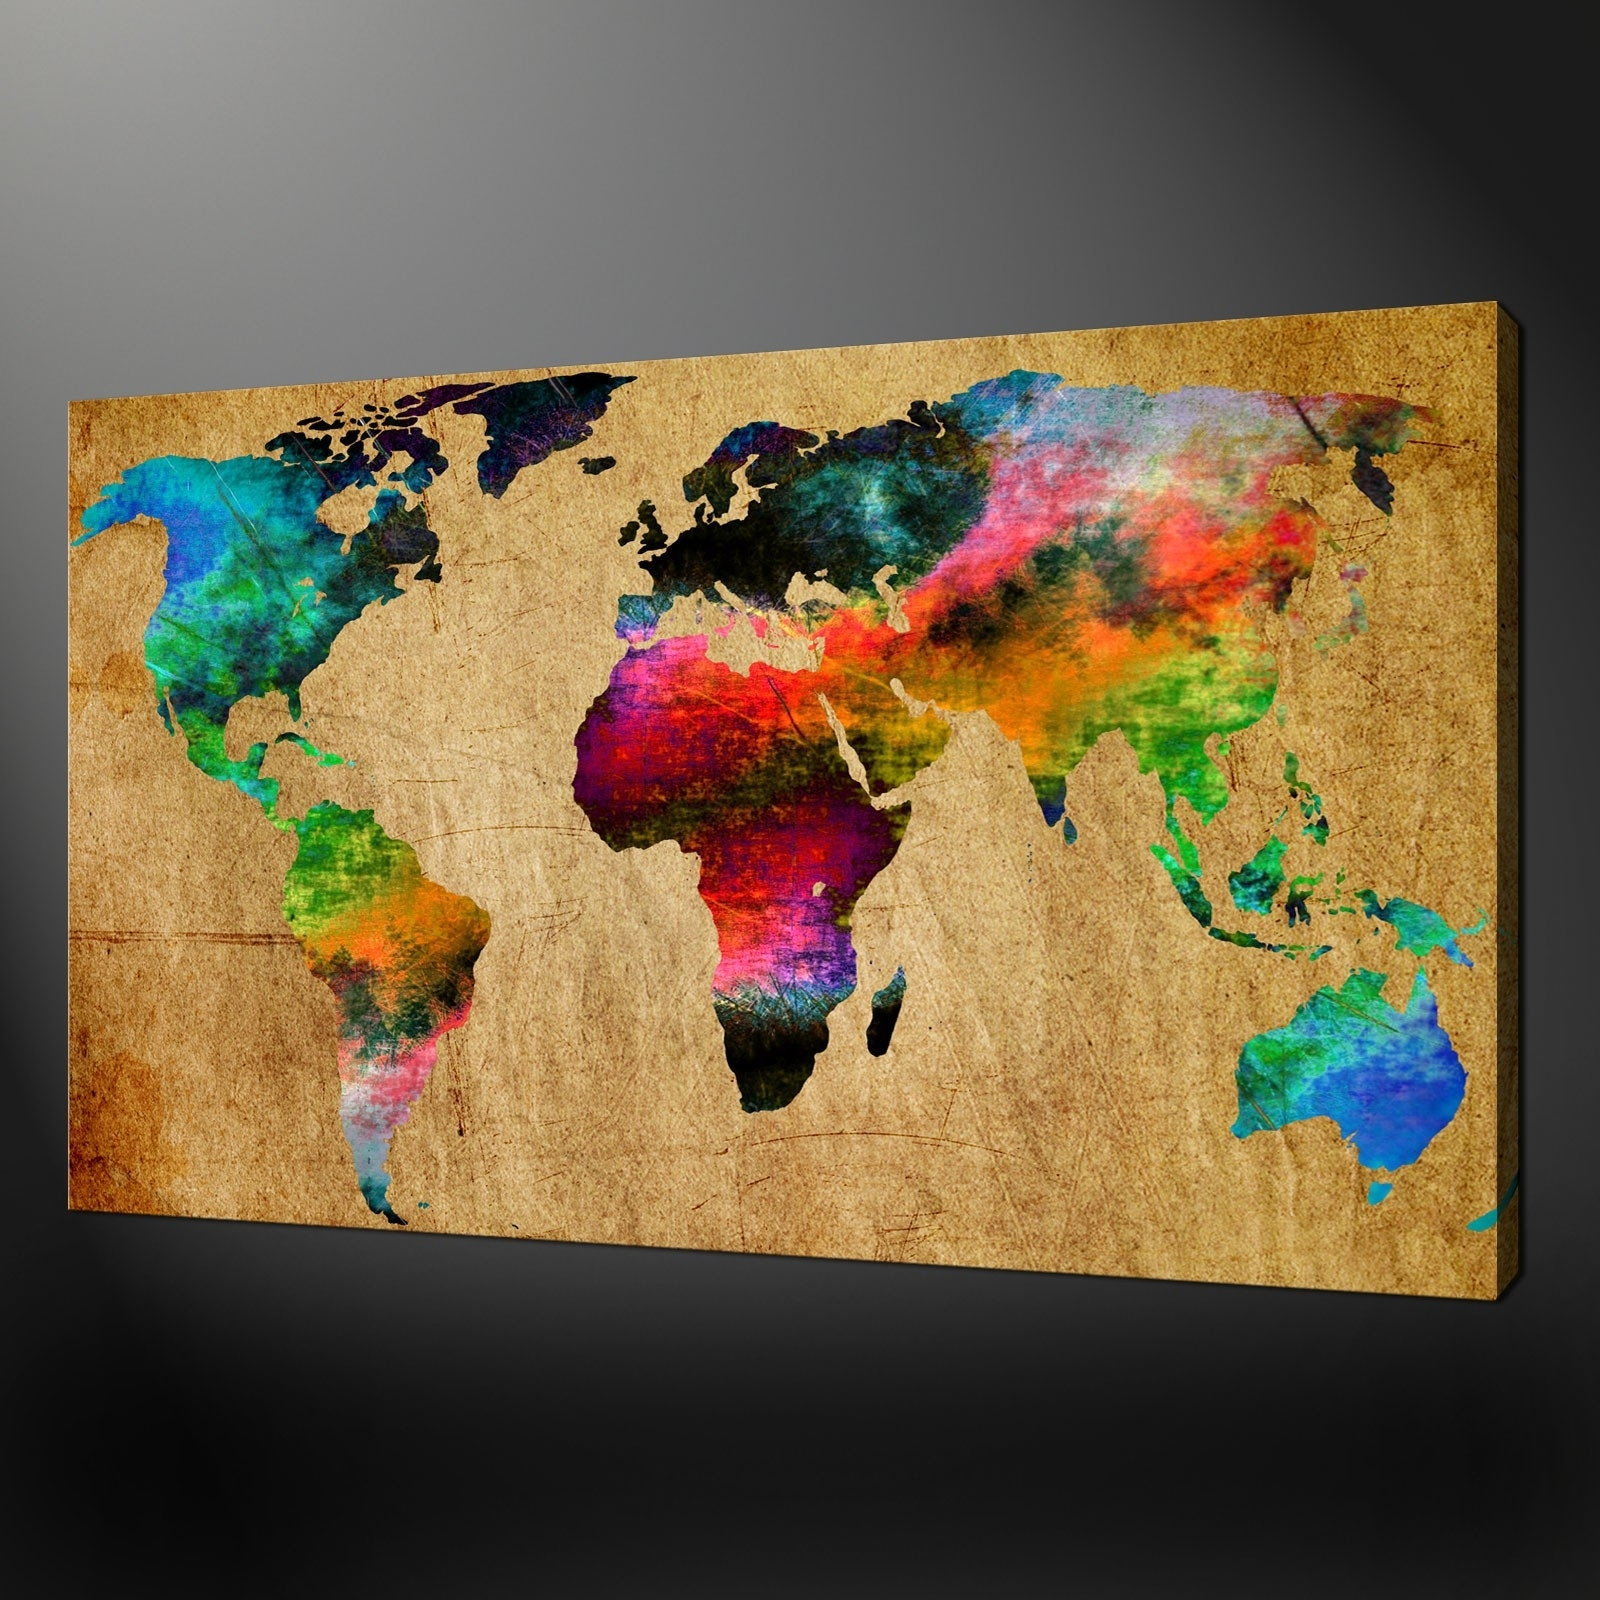 Modern World Map Canvas New World Map Canvas Wall Art Picture With Newest Maps Canvas Wall Art (View 5 of 15)